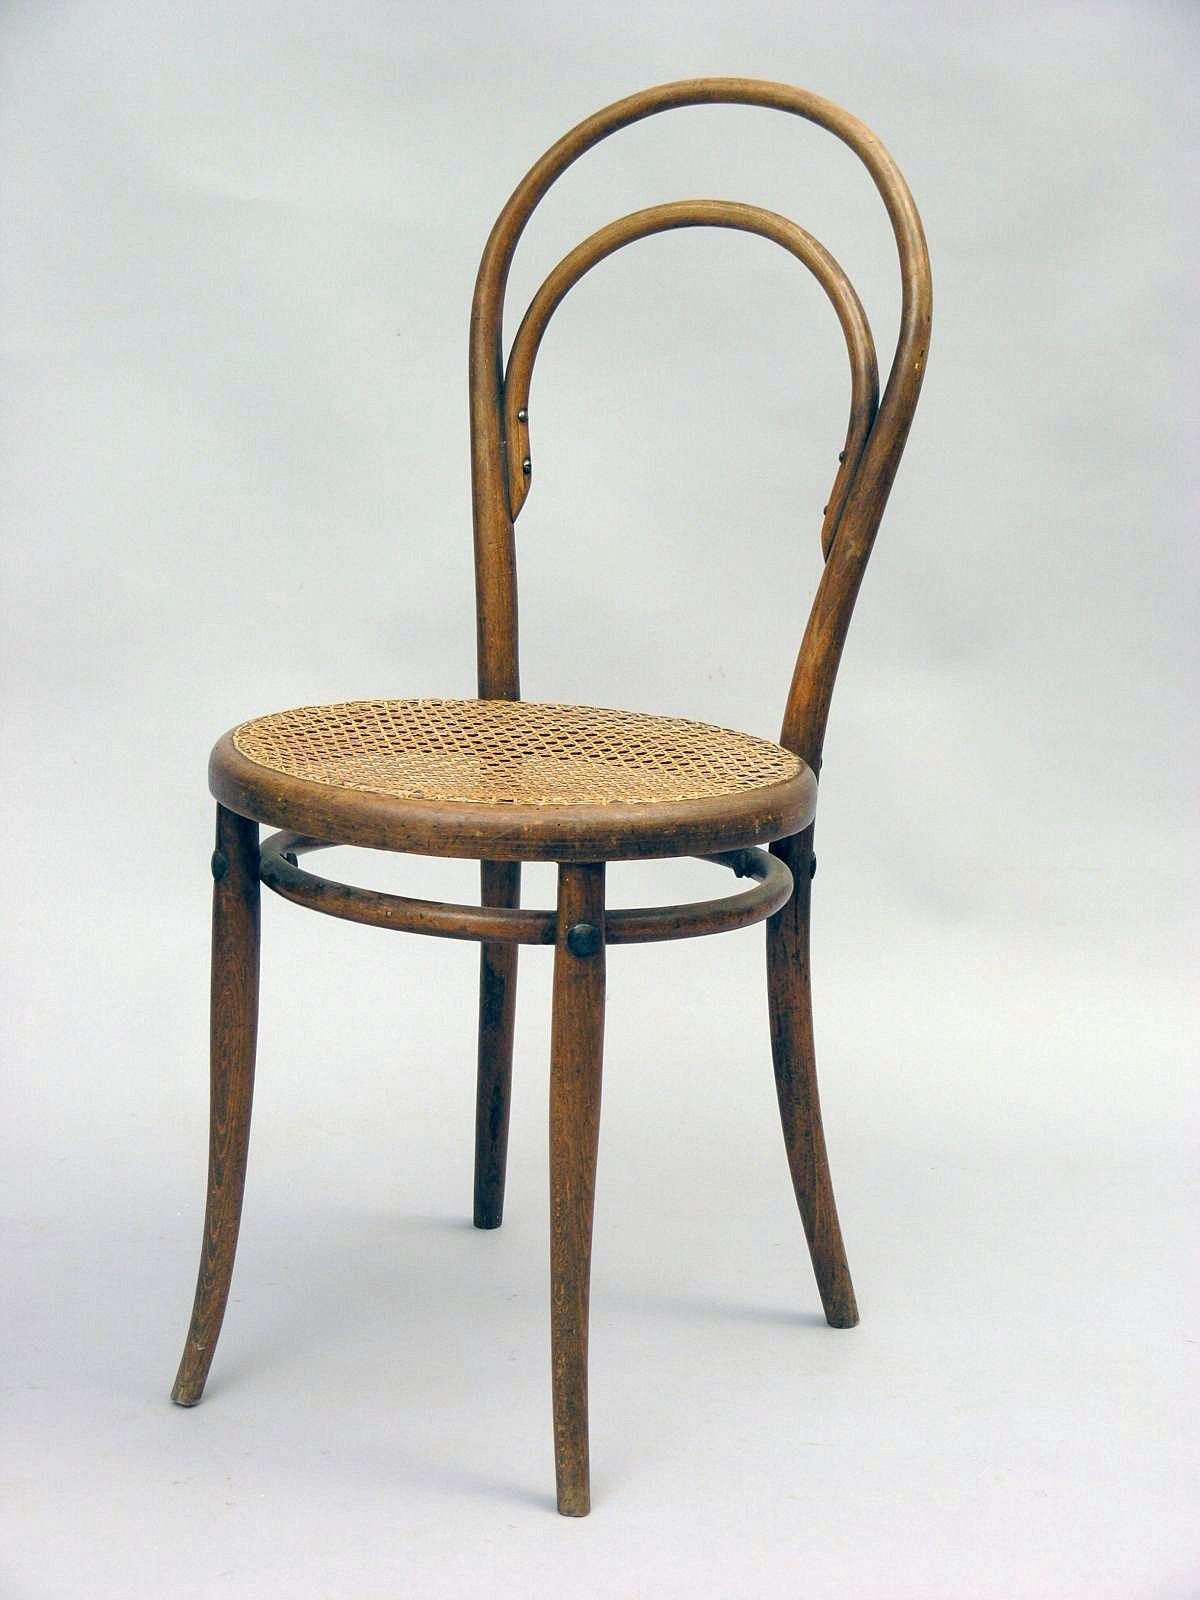 The Chair of Chairs Why this 1859 chair is so important today